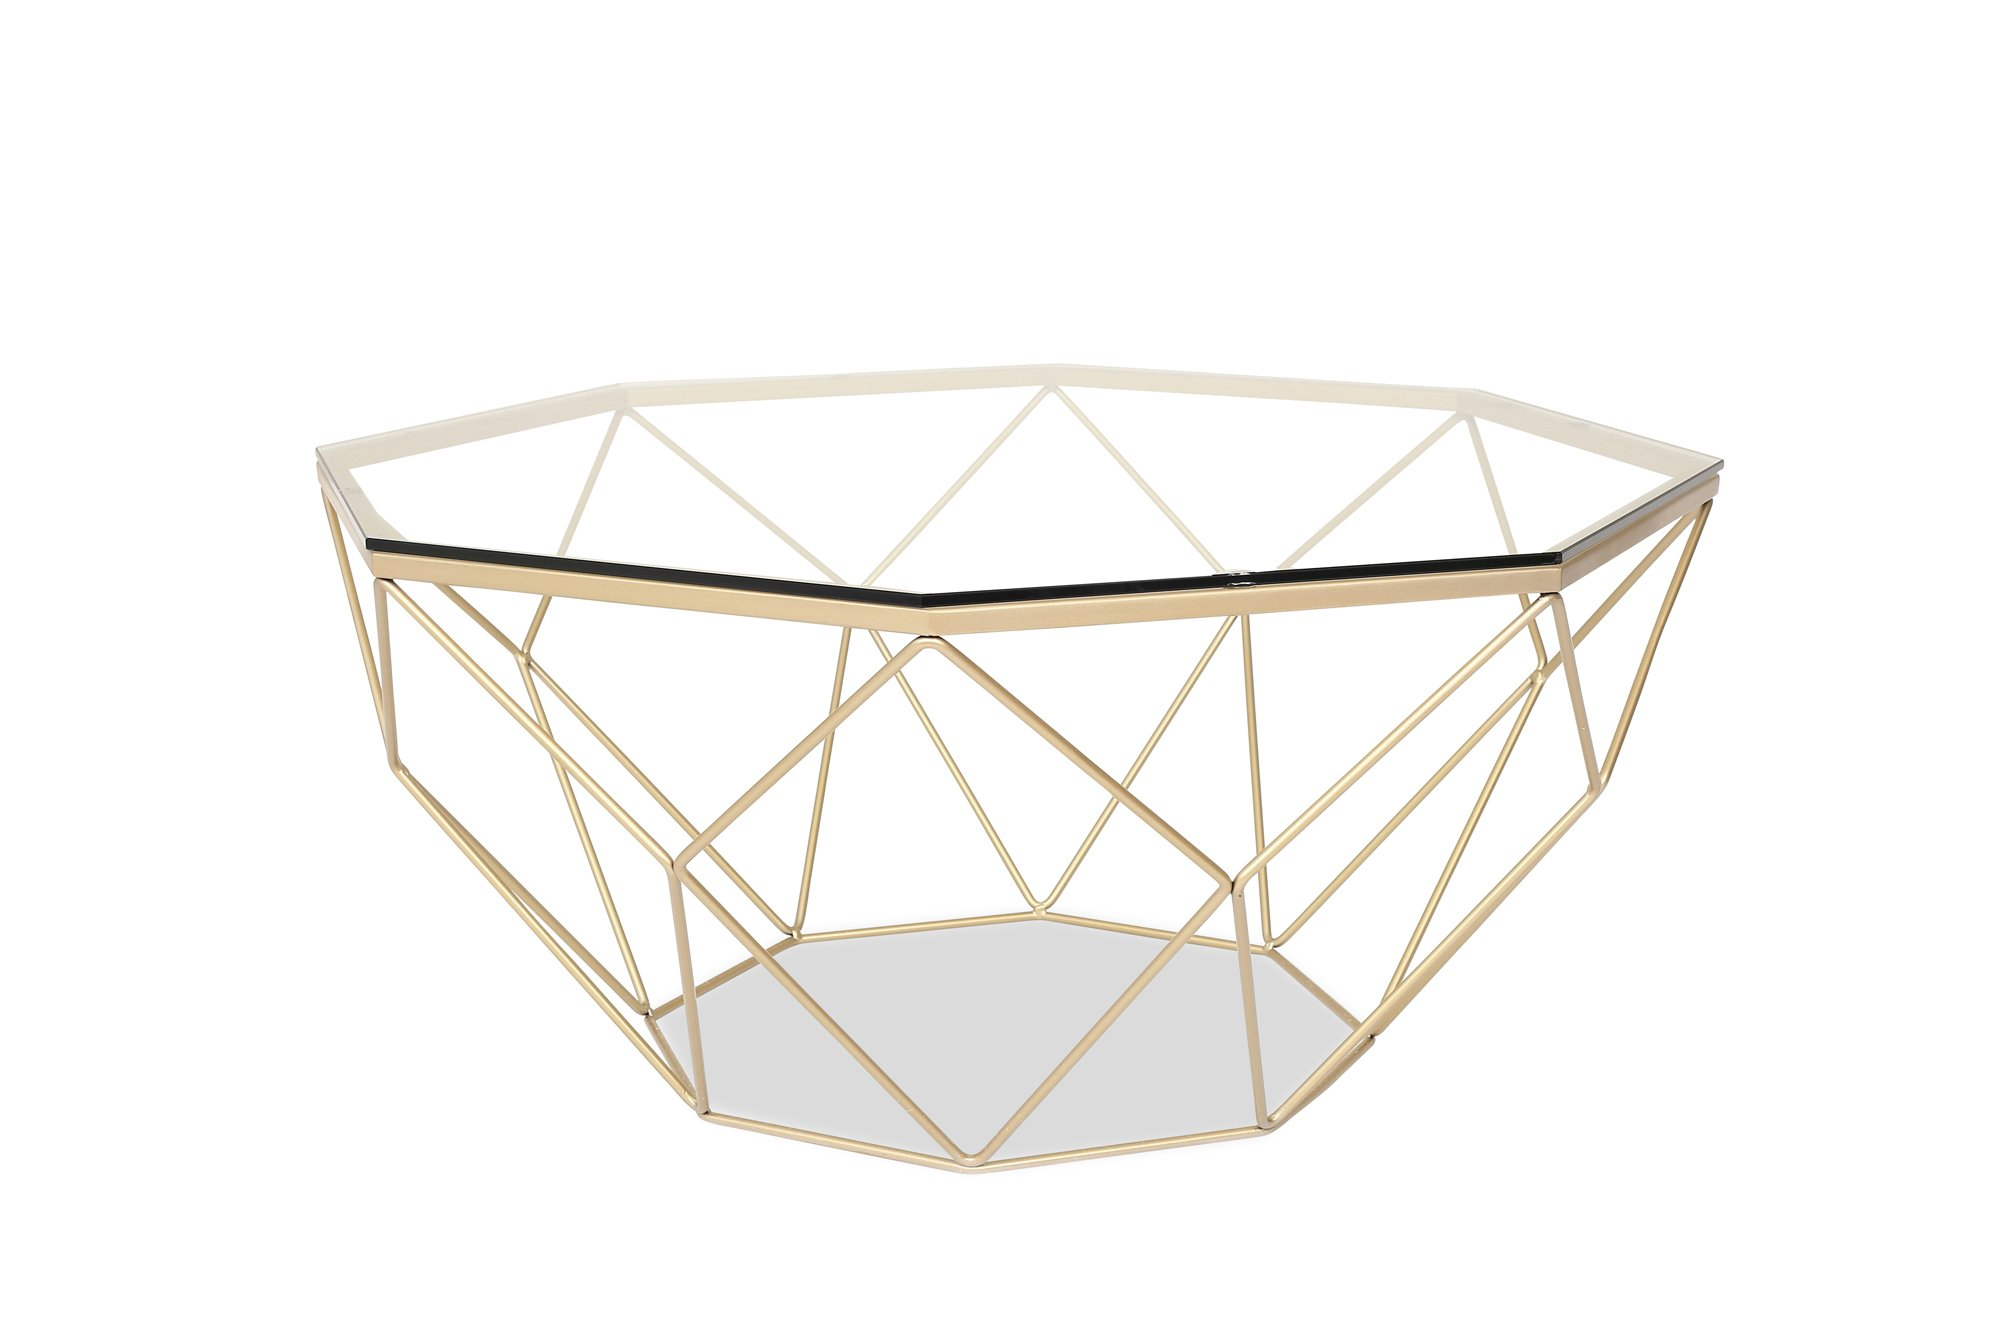 LUNA Modern Glass Coffee Table - Gold Coffee Tables for Living Room - Clear Glass Top by Edloe Finch